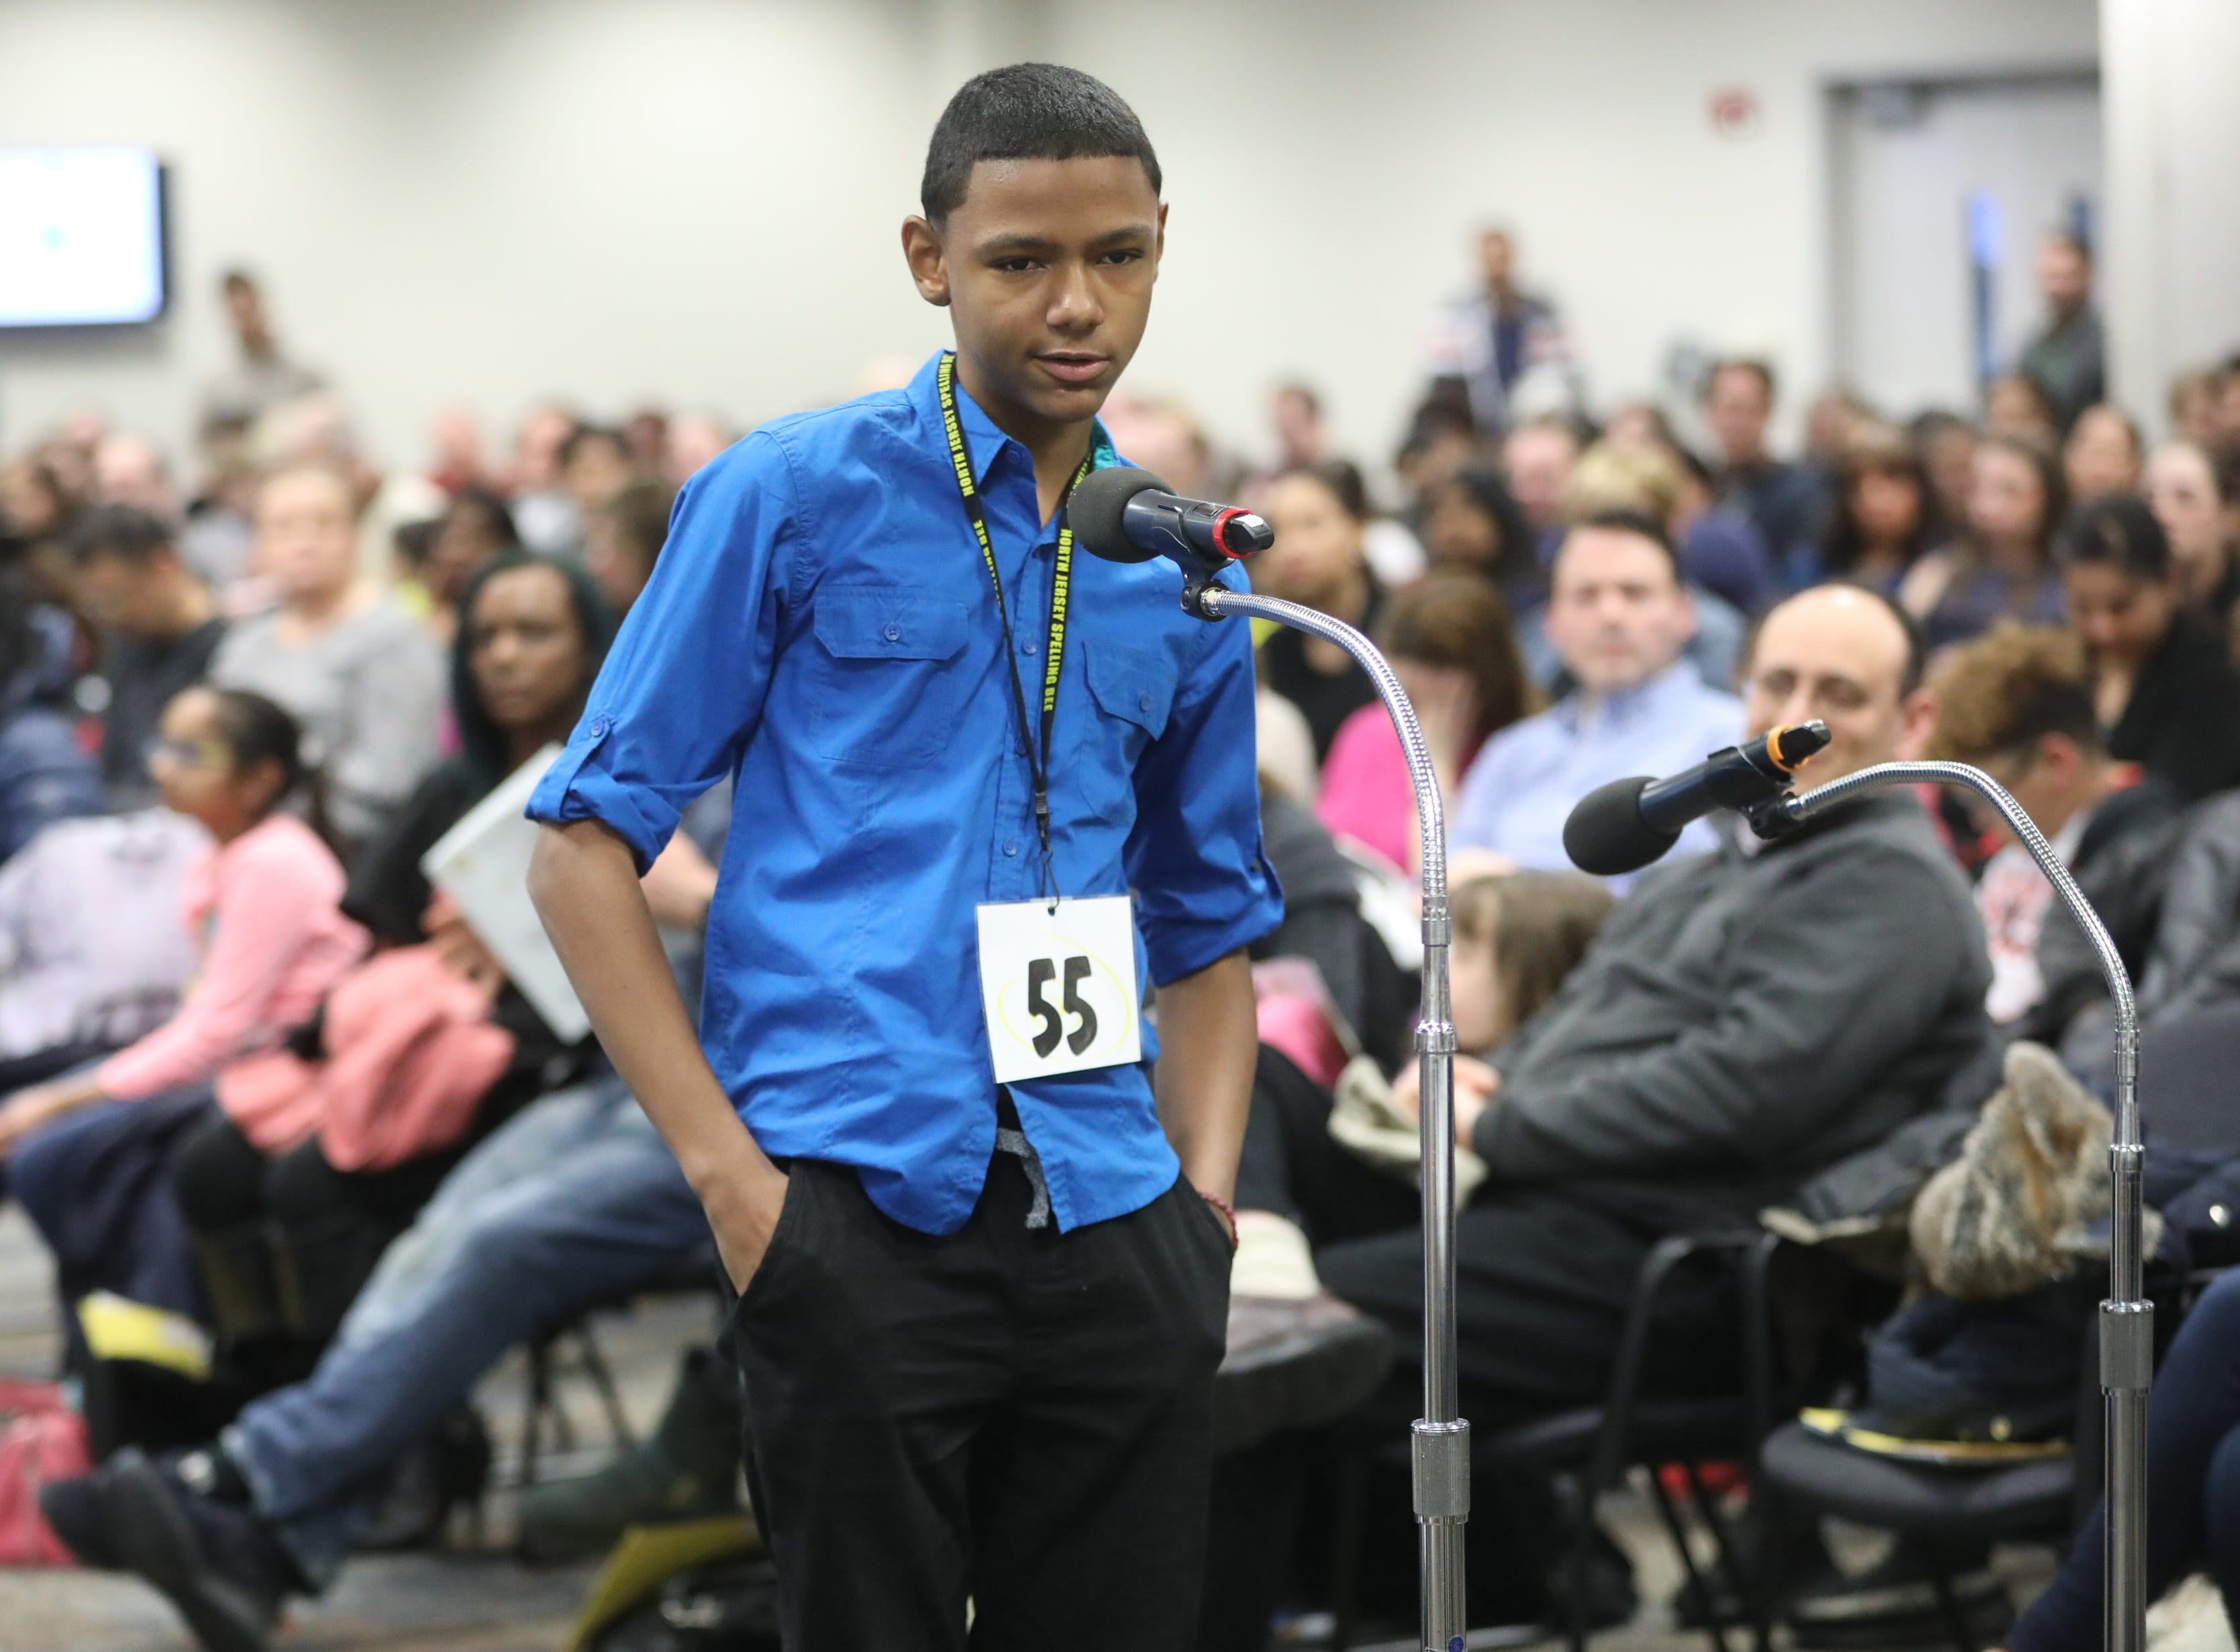 Saul Salazar, of Passaic, competes in the first round of the 2019 North Jersey Spelling Bee, in Paramus. Thursday, March 14, 2019